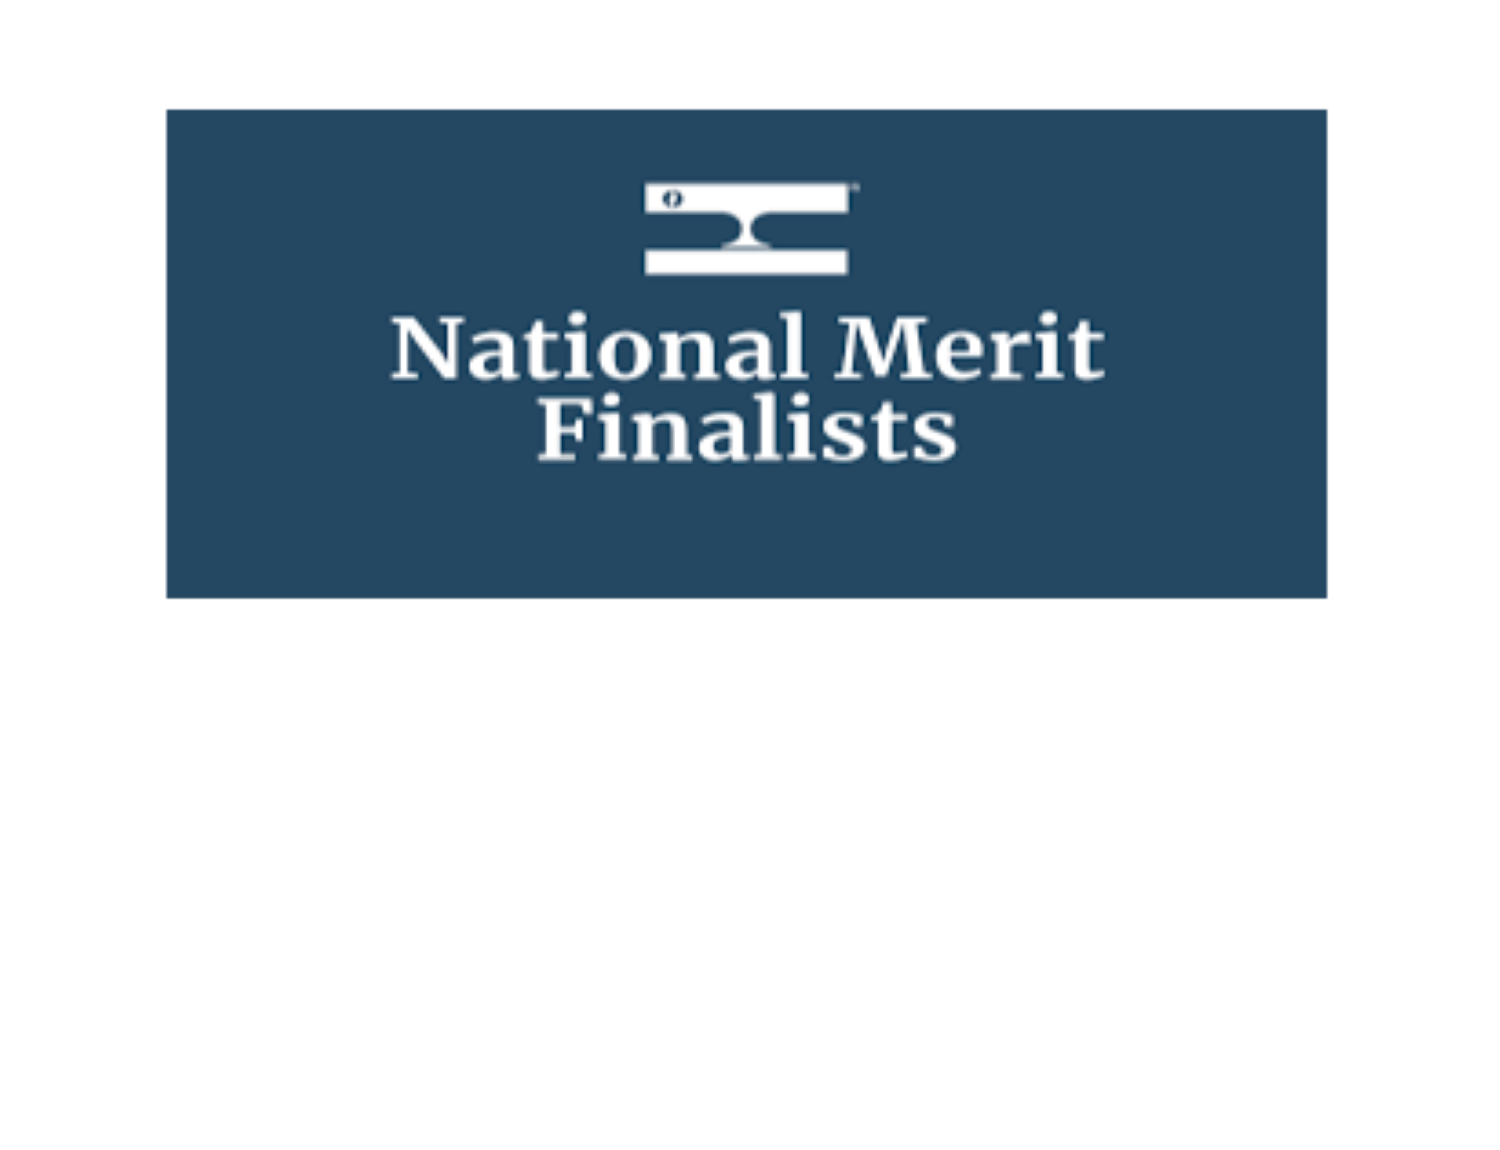 Naperville 203 Students Announced as National Merit Finalists